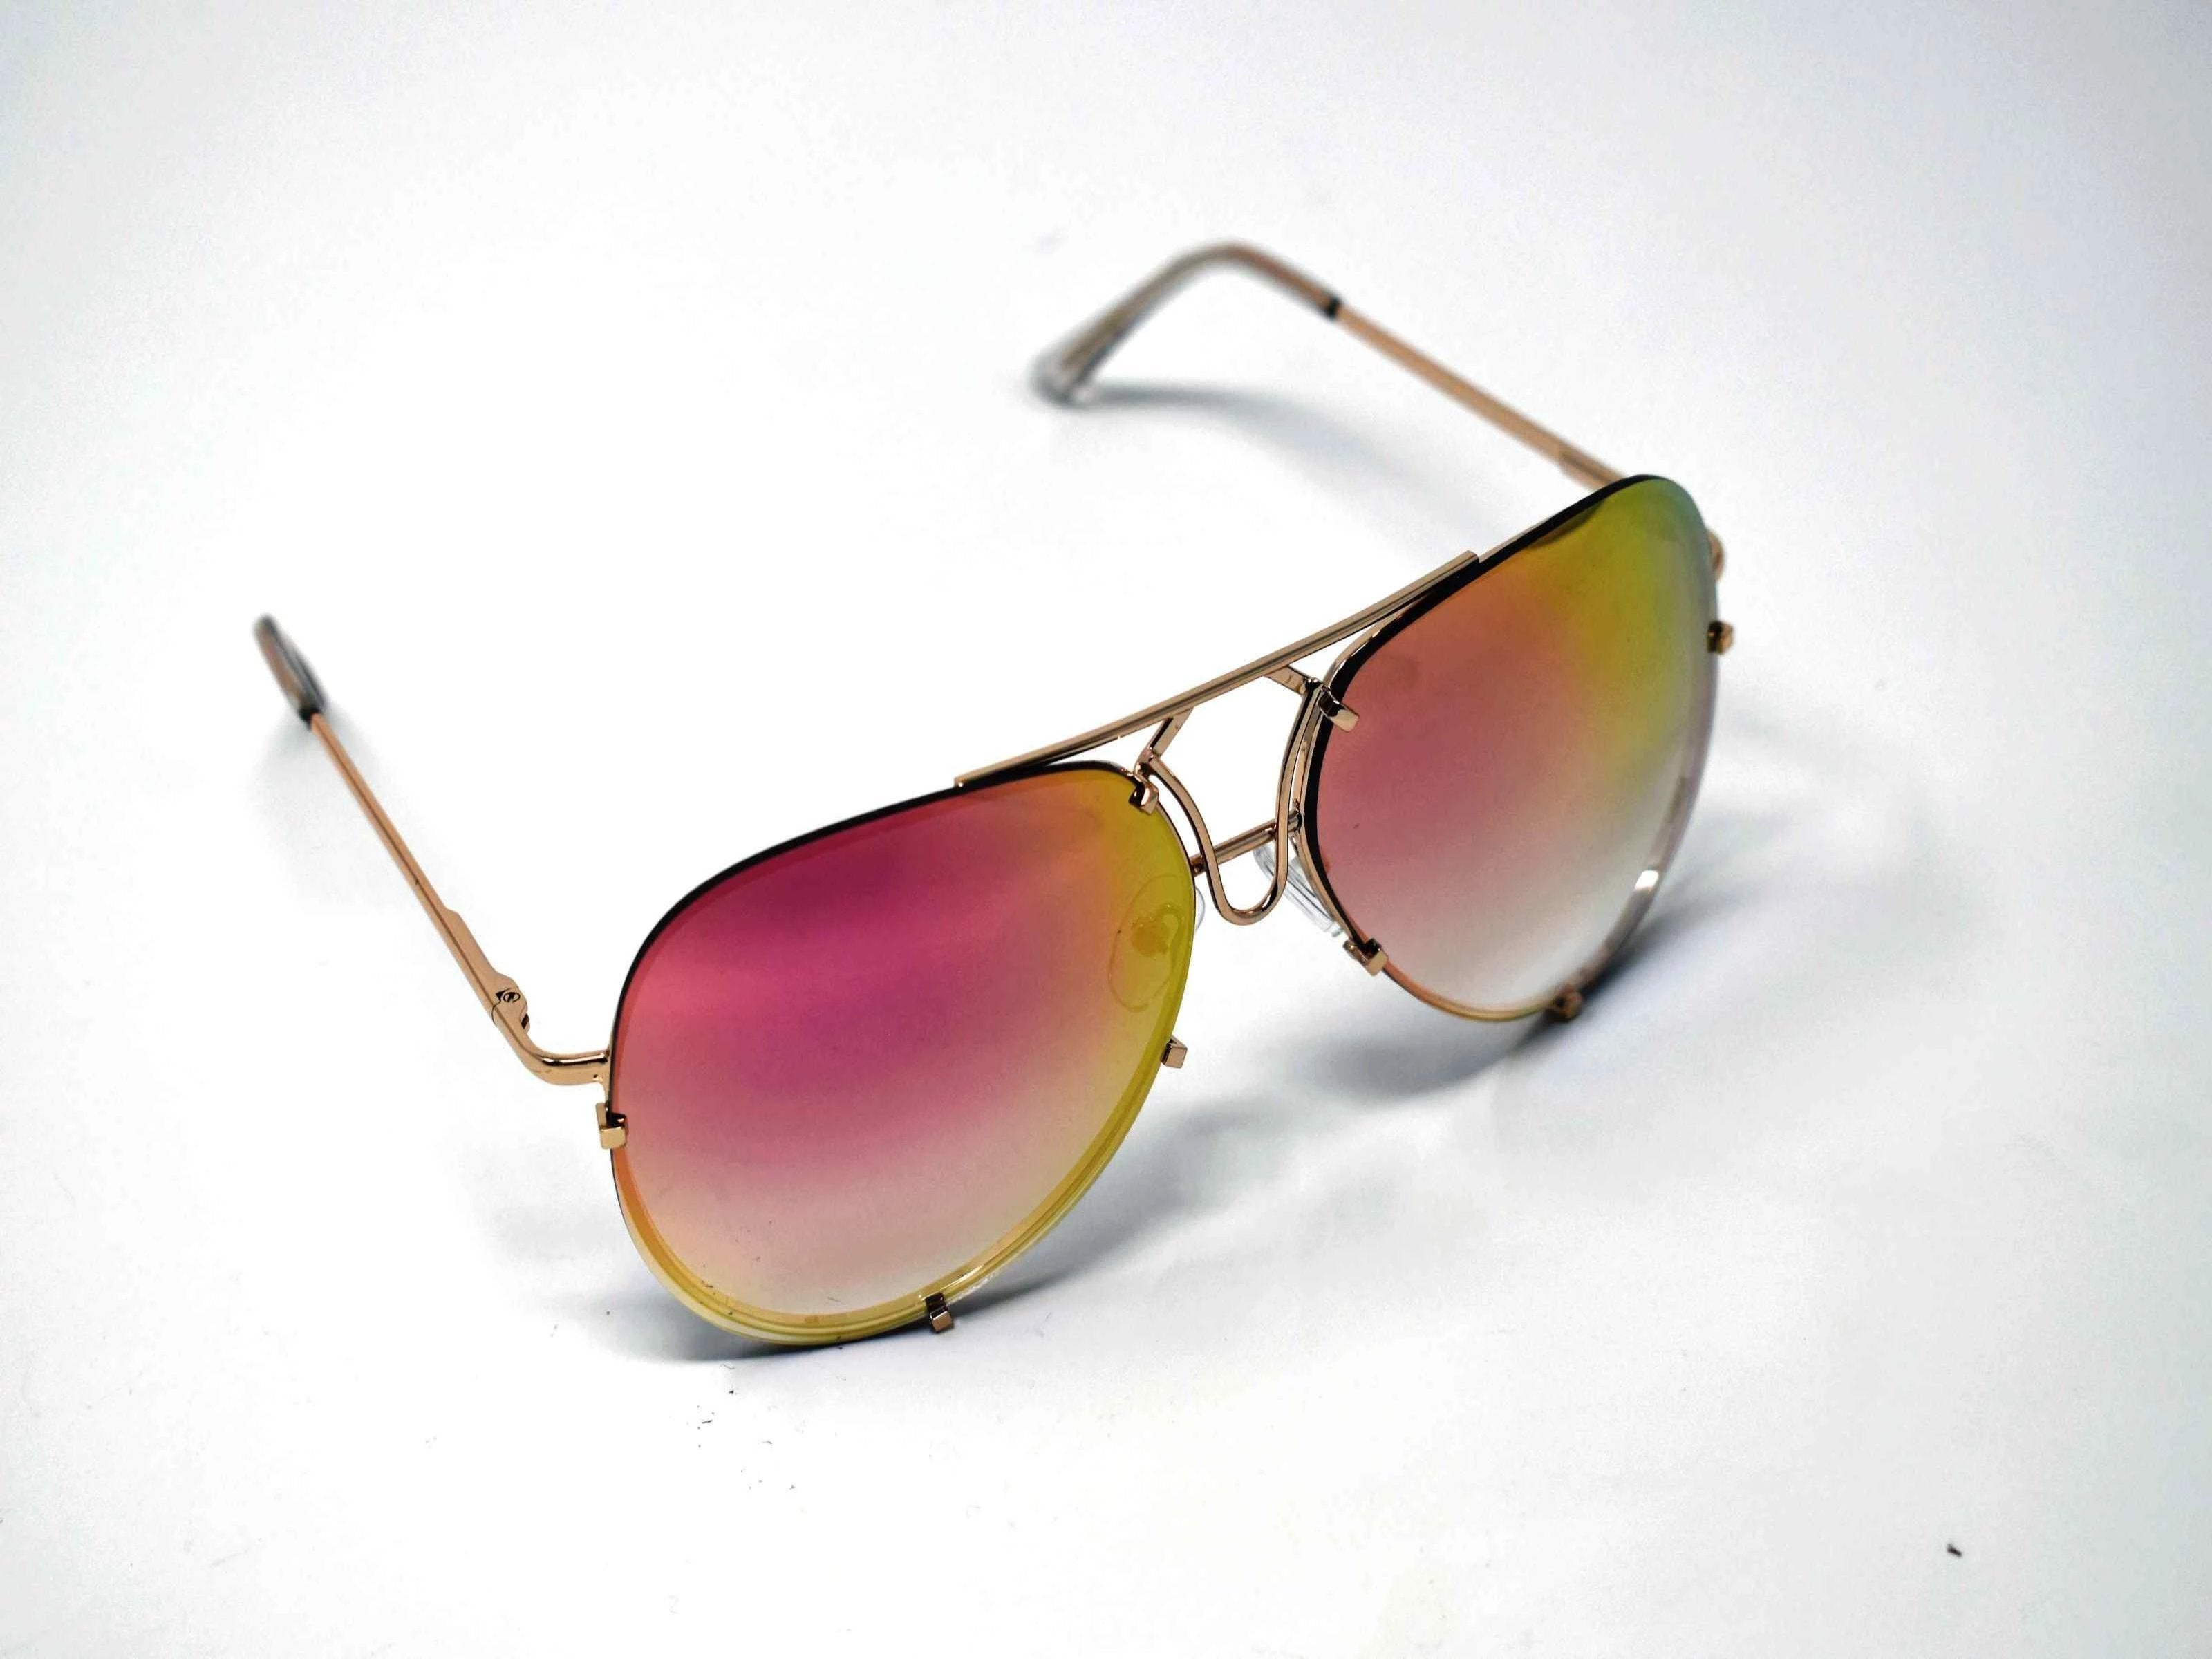 Don't get caught without these yarrow gold frame pink mirrored lens aviator sunglasses.